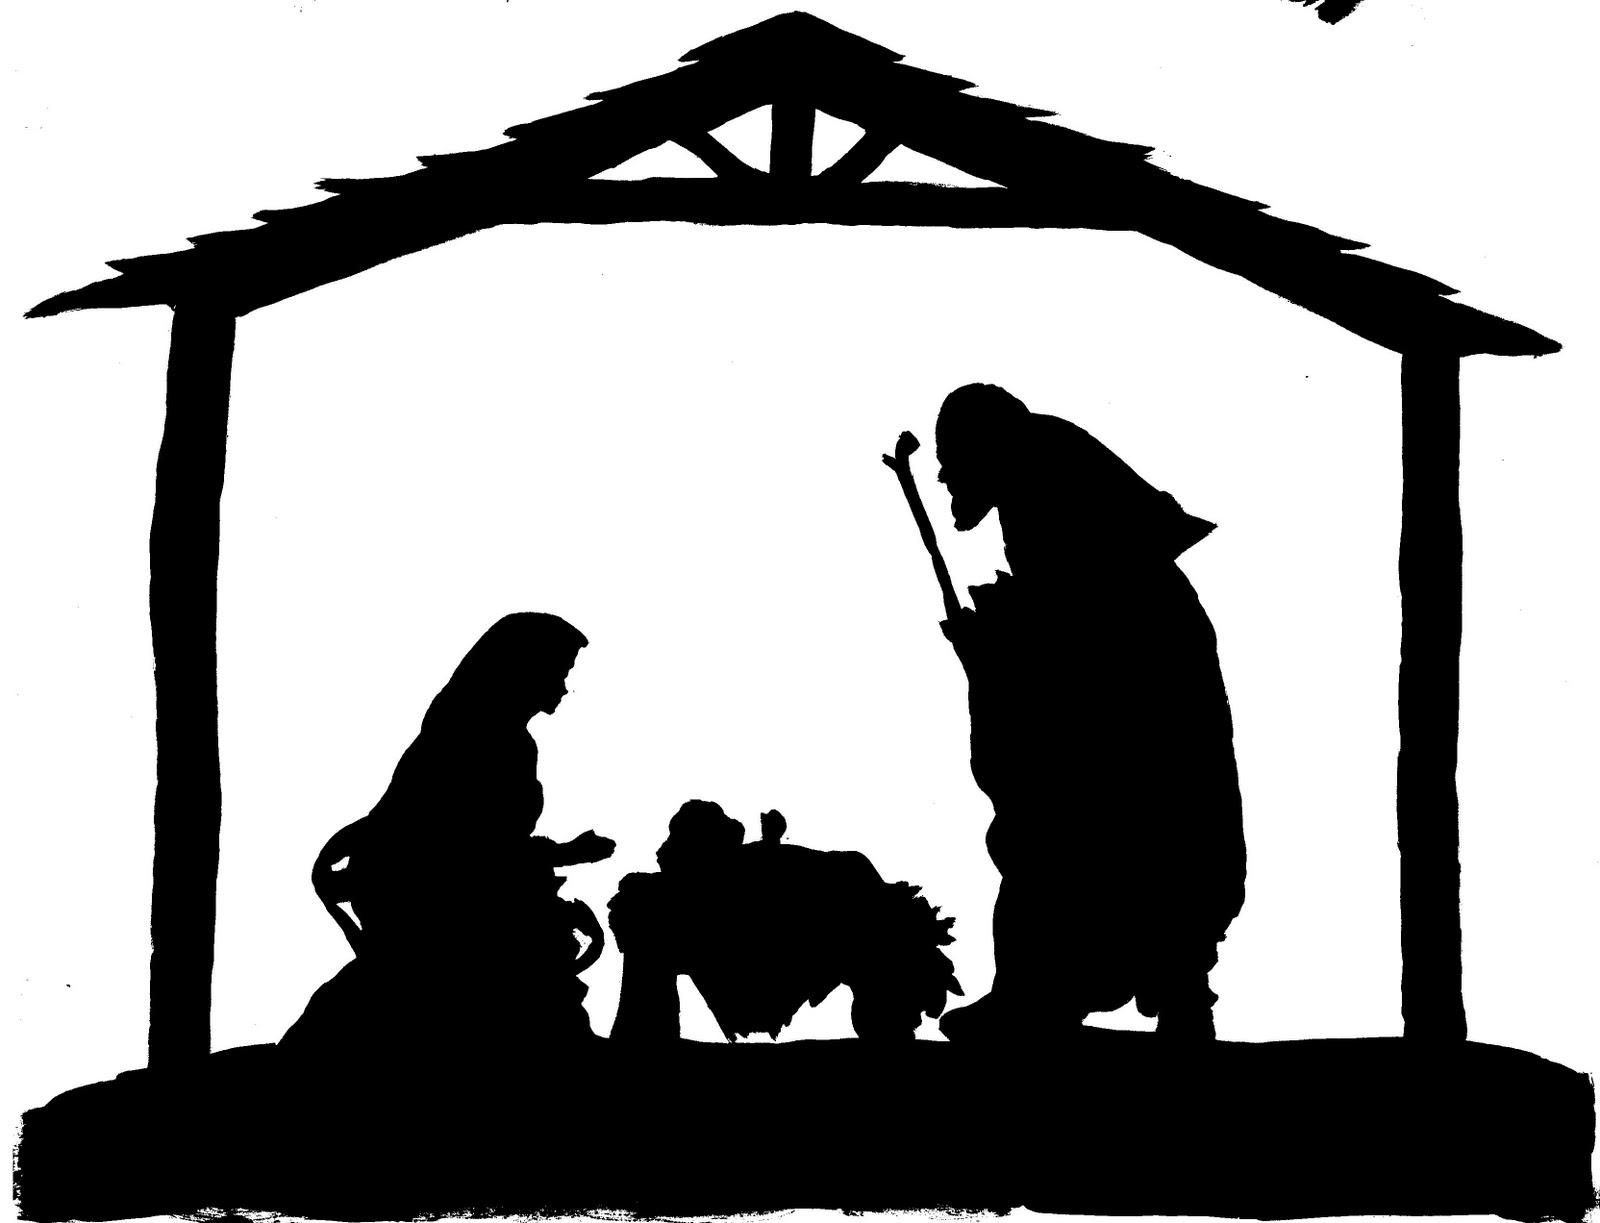 Free Nativity Scene Images, Download Free Clip Art, Free.